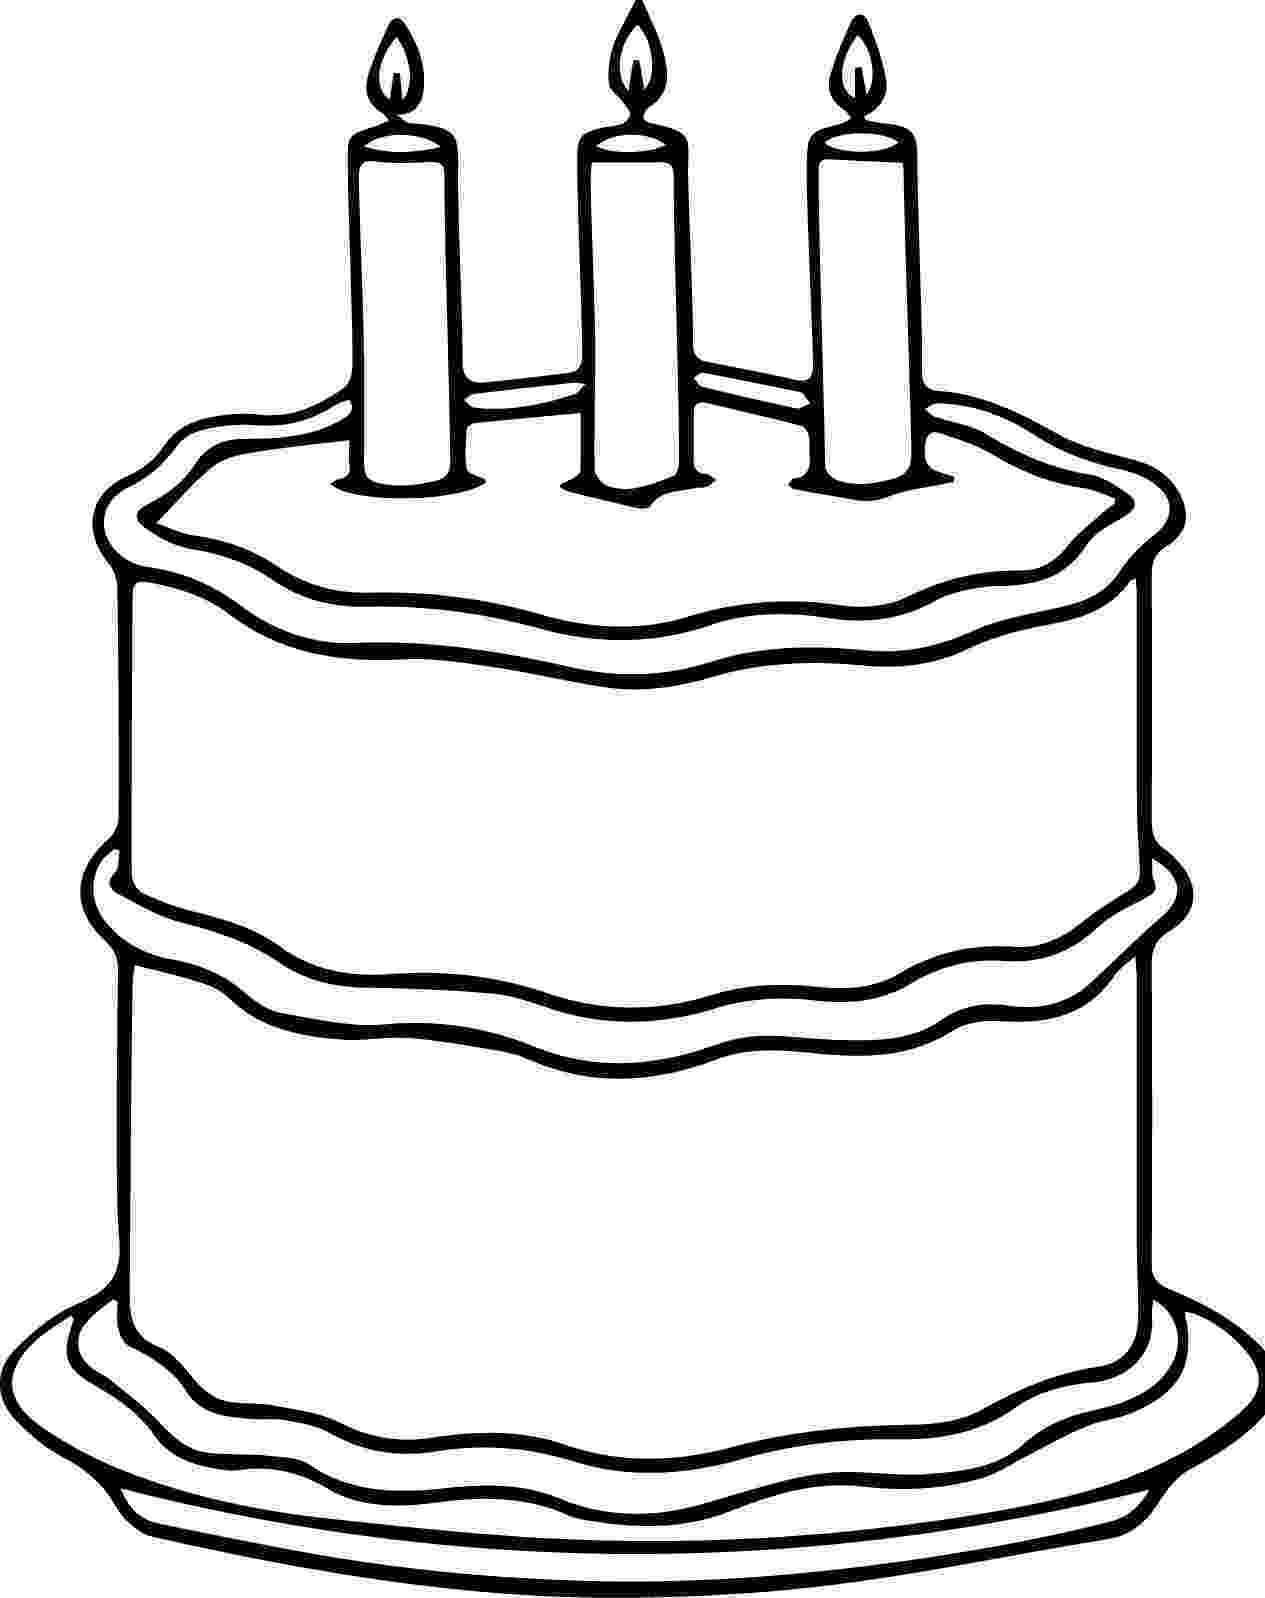 coloring page of a birthday cake birthday cake coloring page birthday coloring pages page cake birthday of a coloring